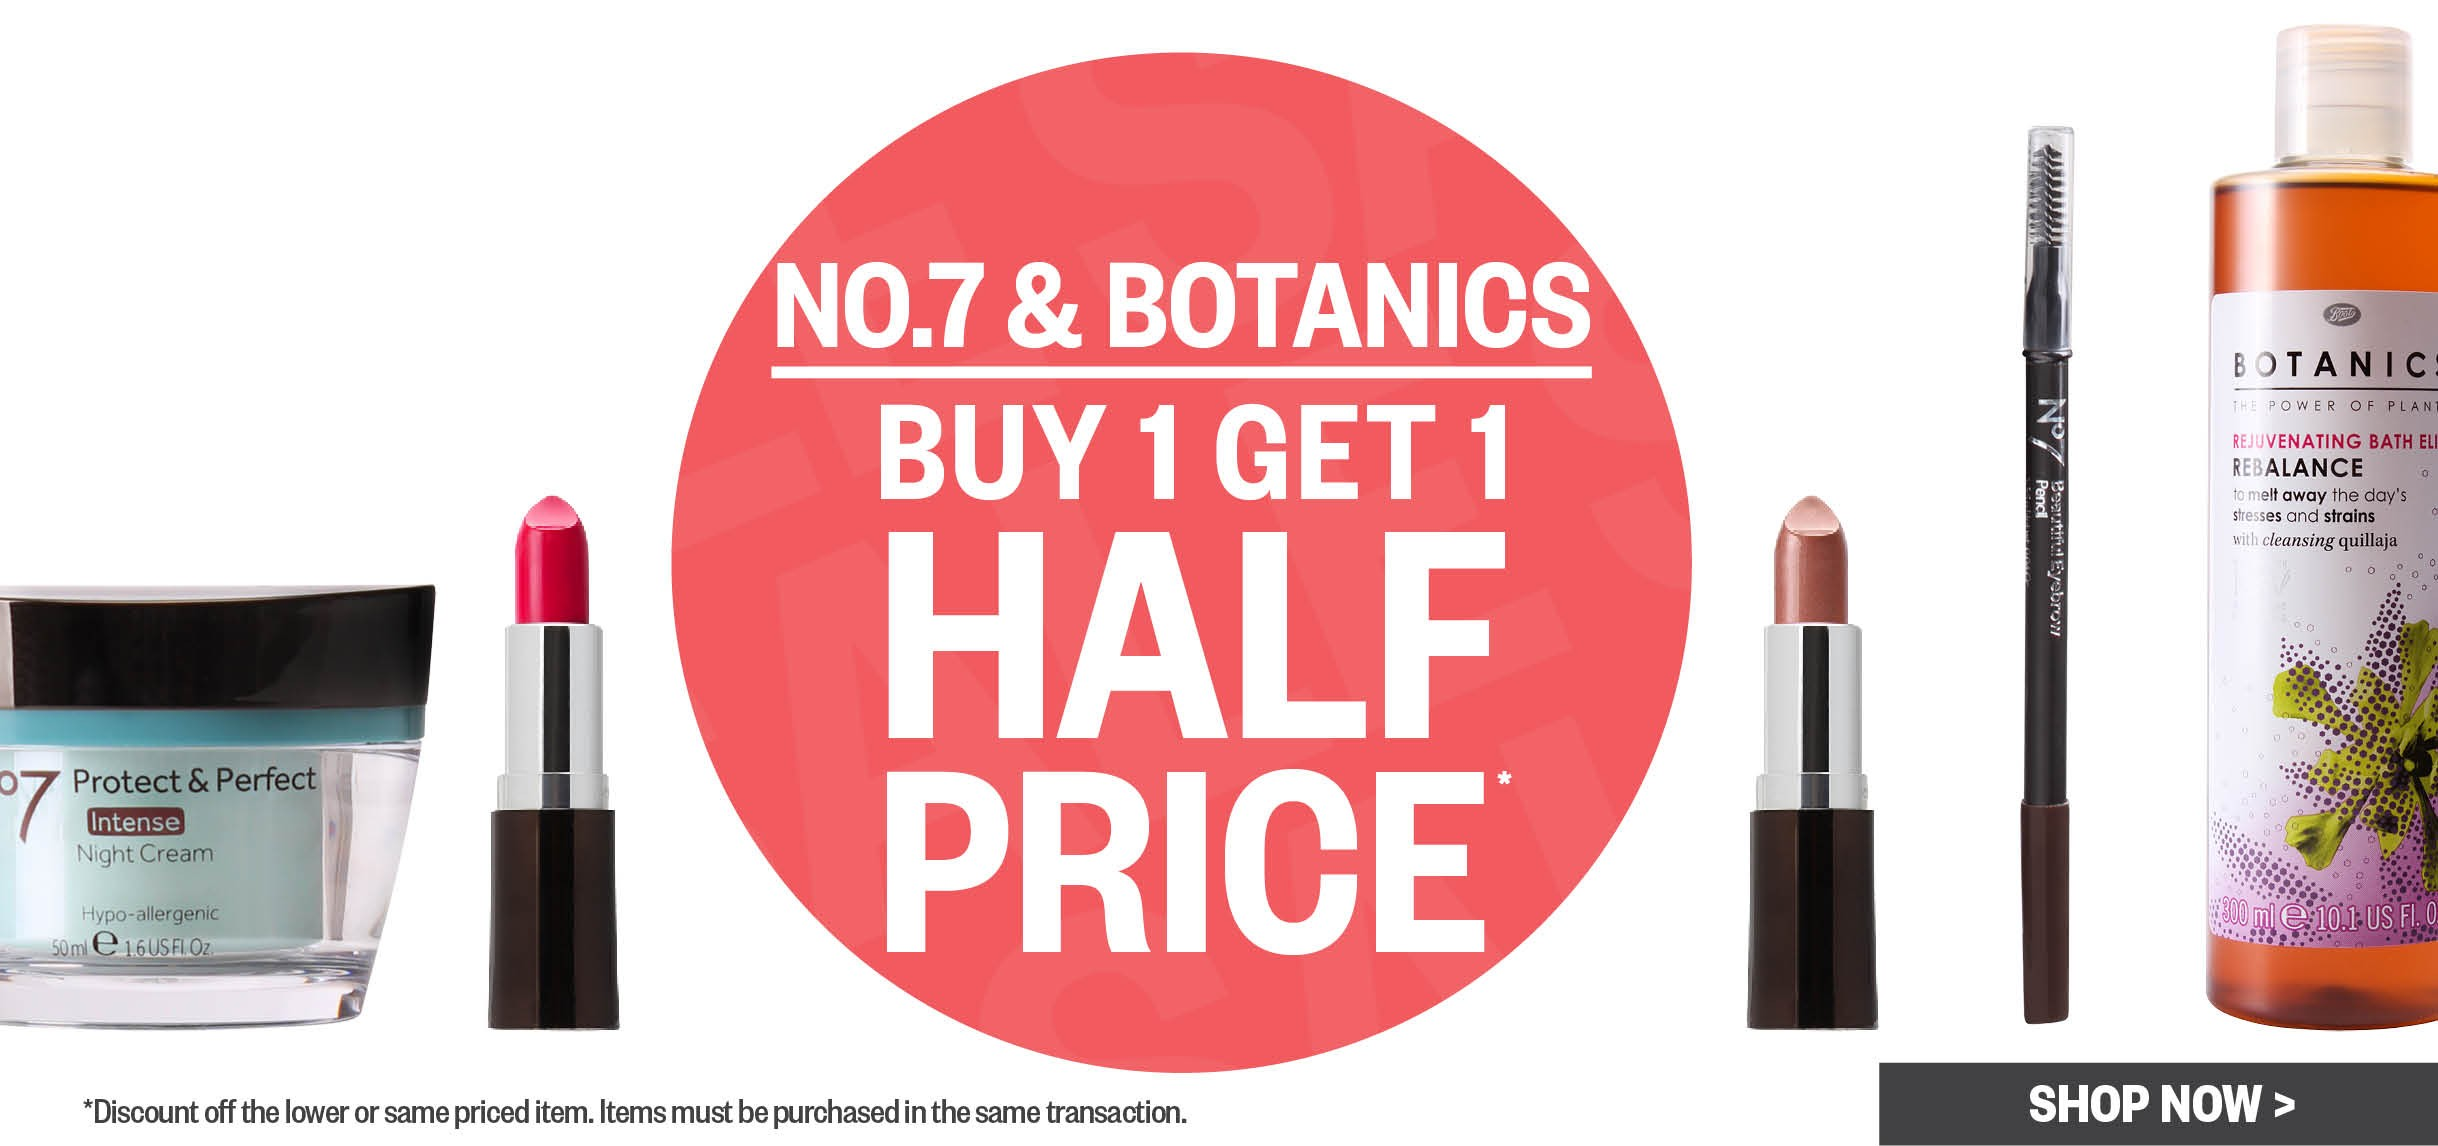 Bargain - Buy 1 Get 1 Half Price - No. 7 & Botanics @ Postie